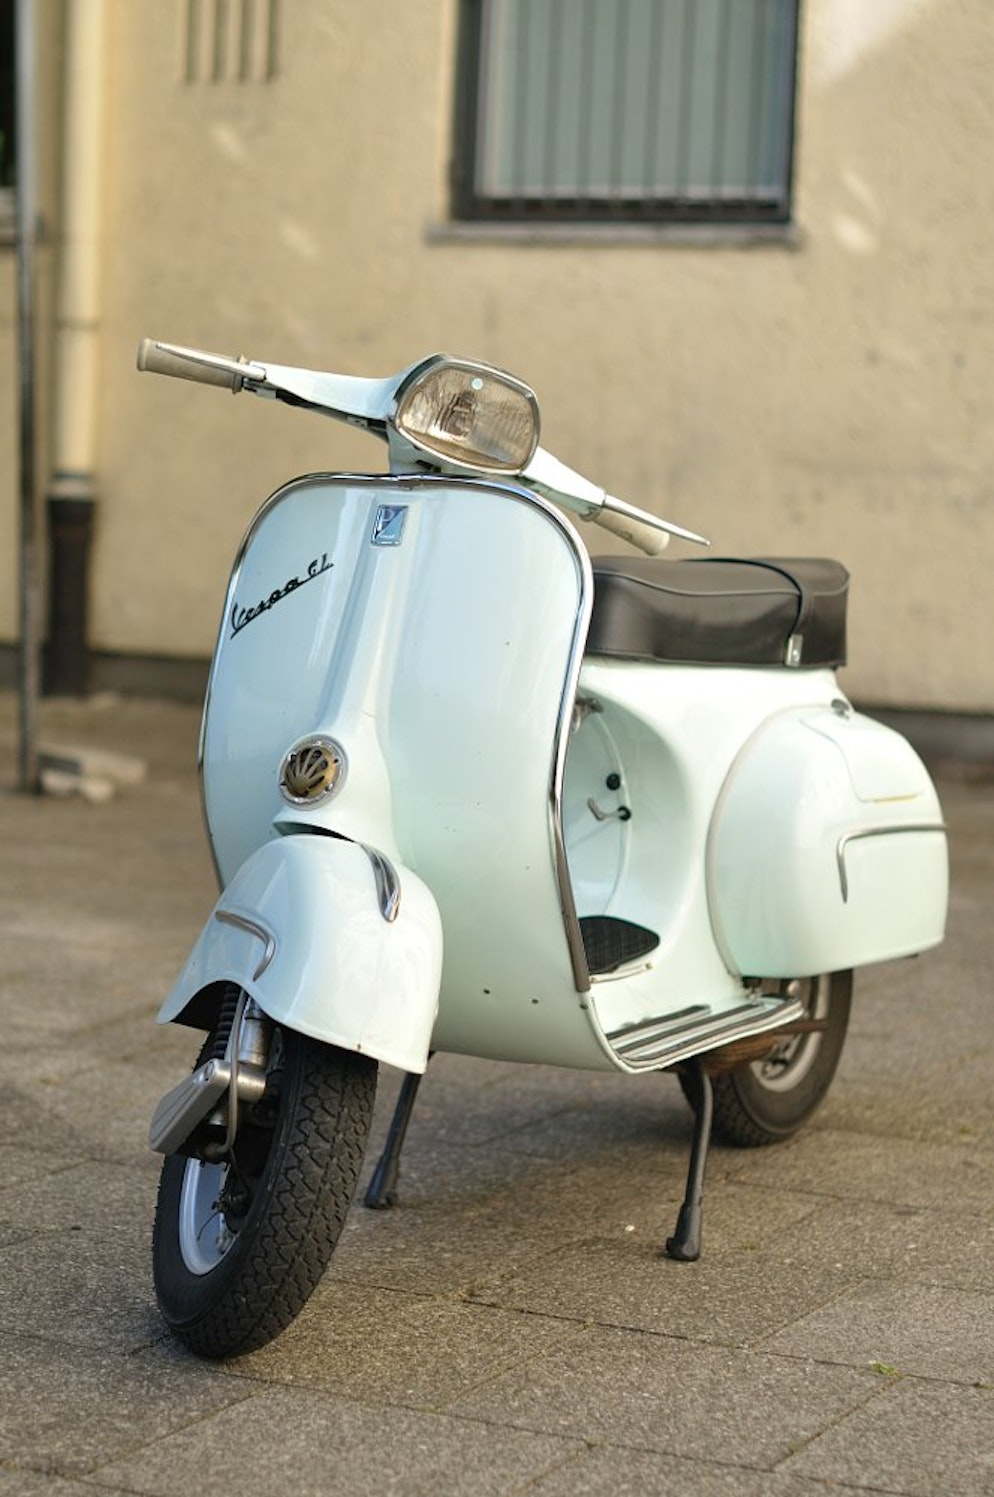 Genoa's mayor wants classic Vespas off their home roads, citing